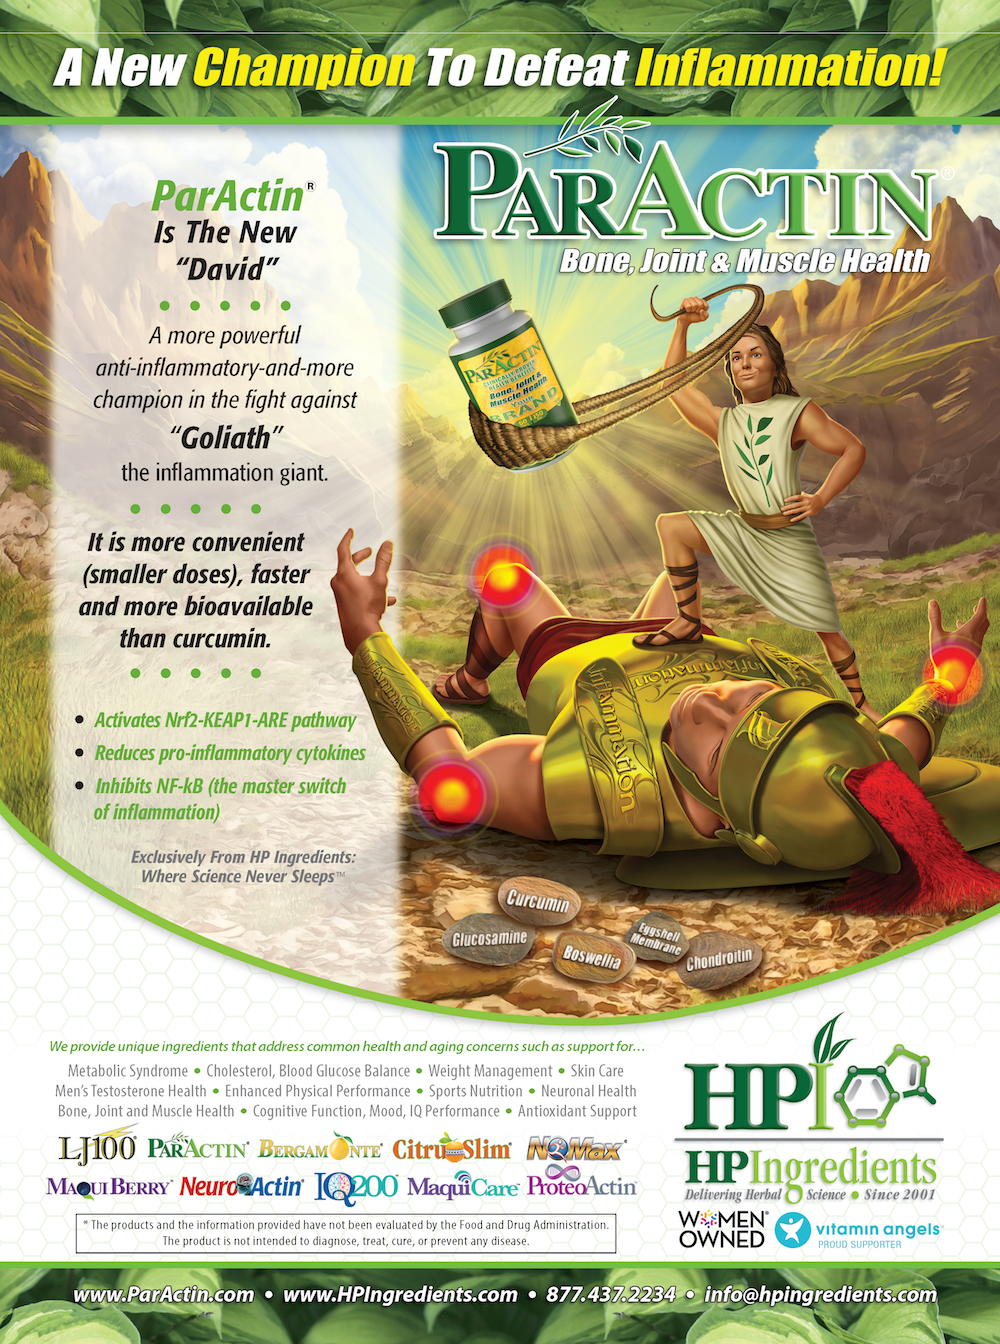 hpi_nutworld_fpg_paraactin_2ads_page_1